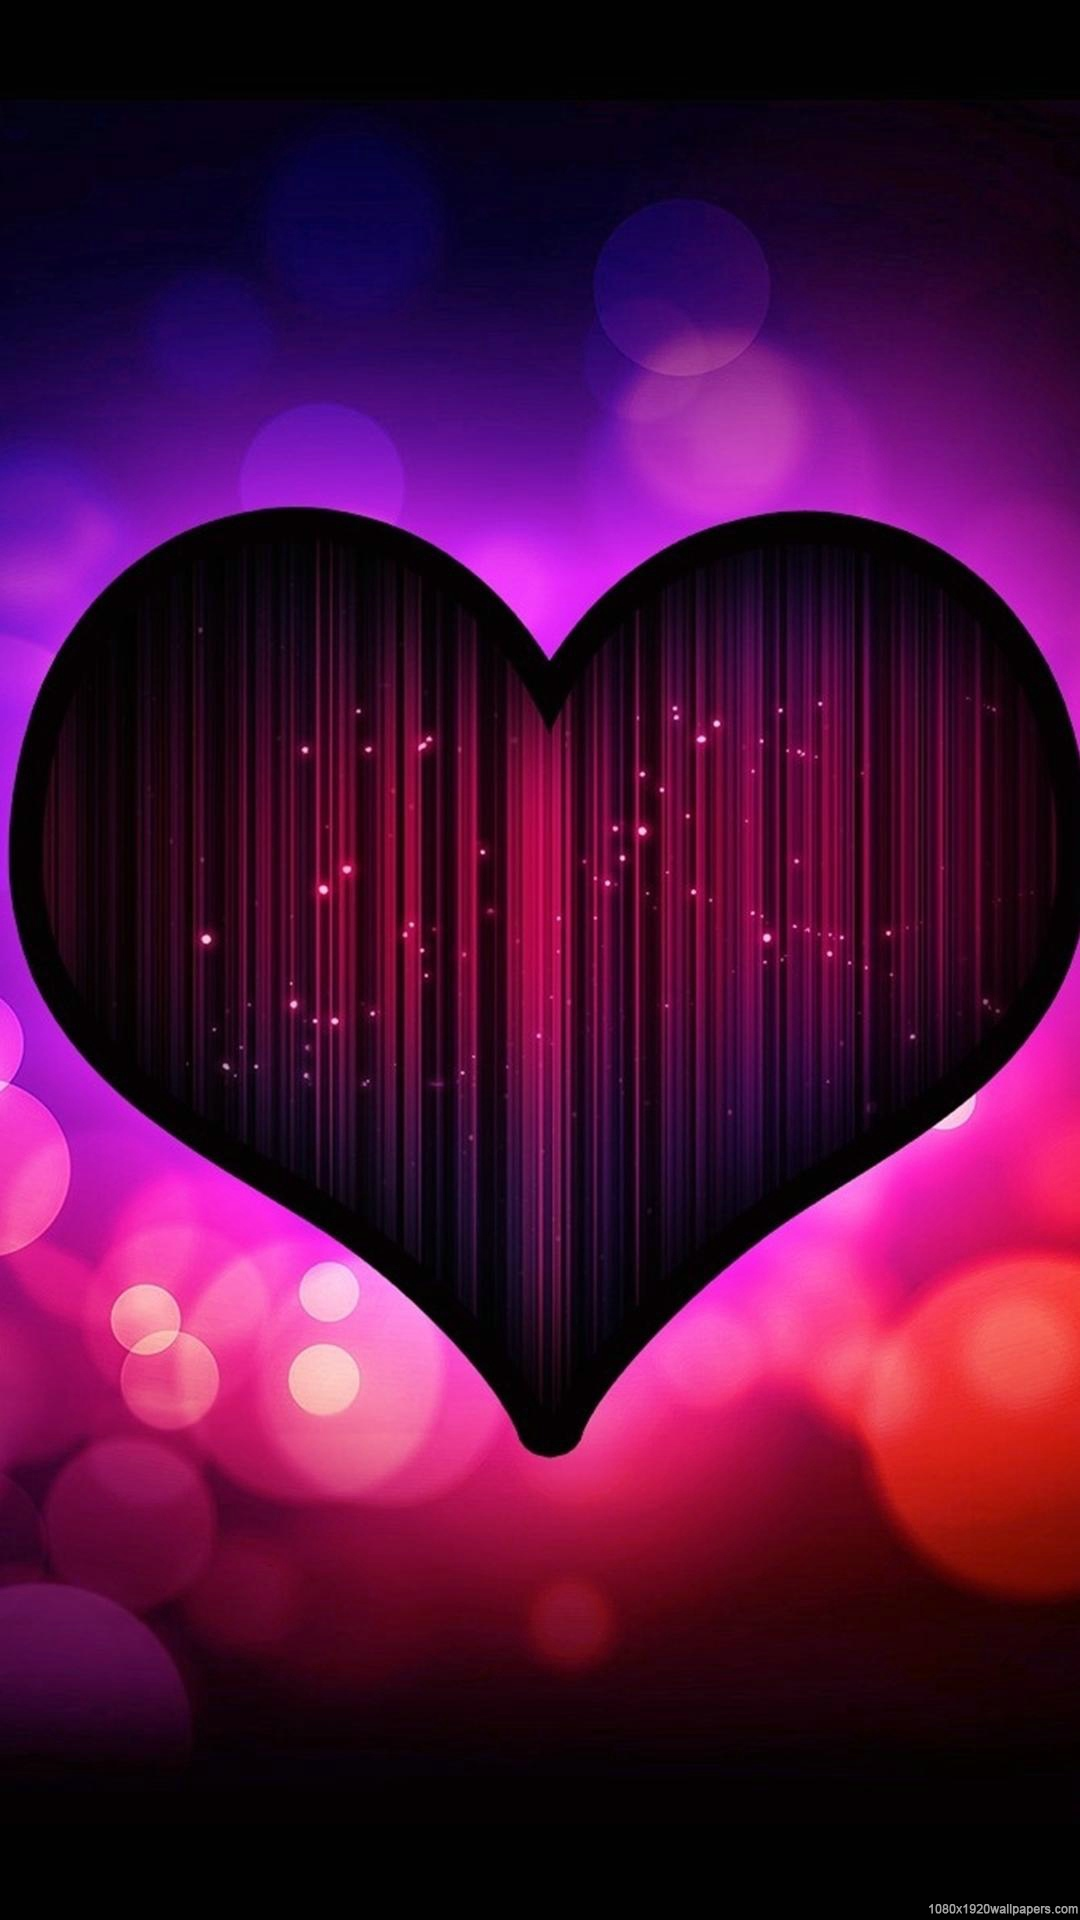 cool heart wallpapers hd - photo #22